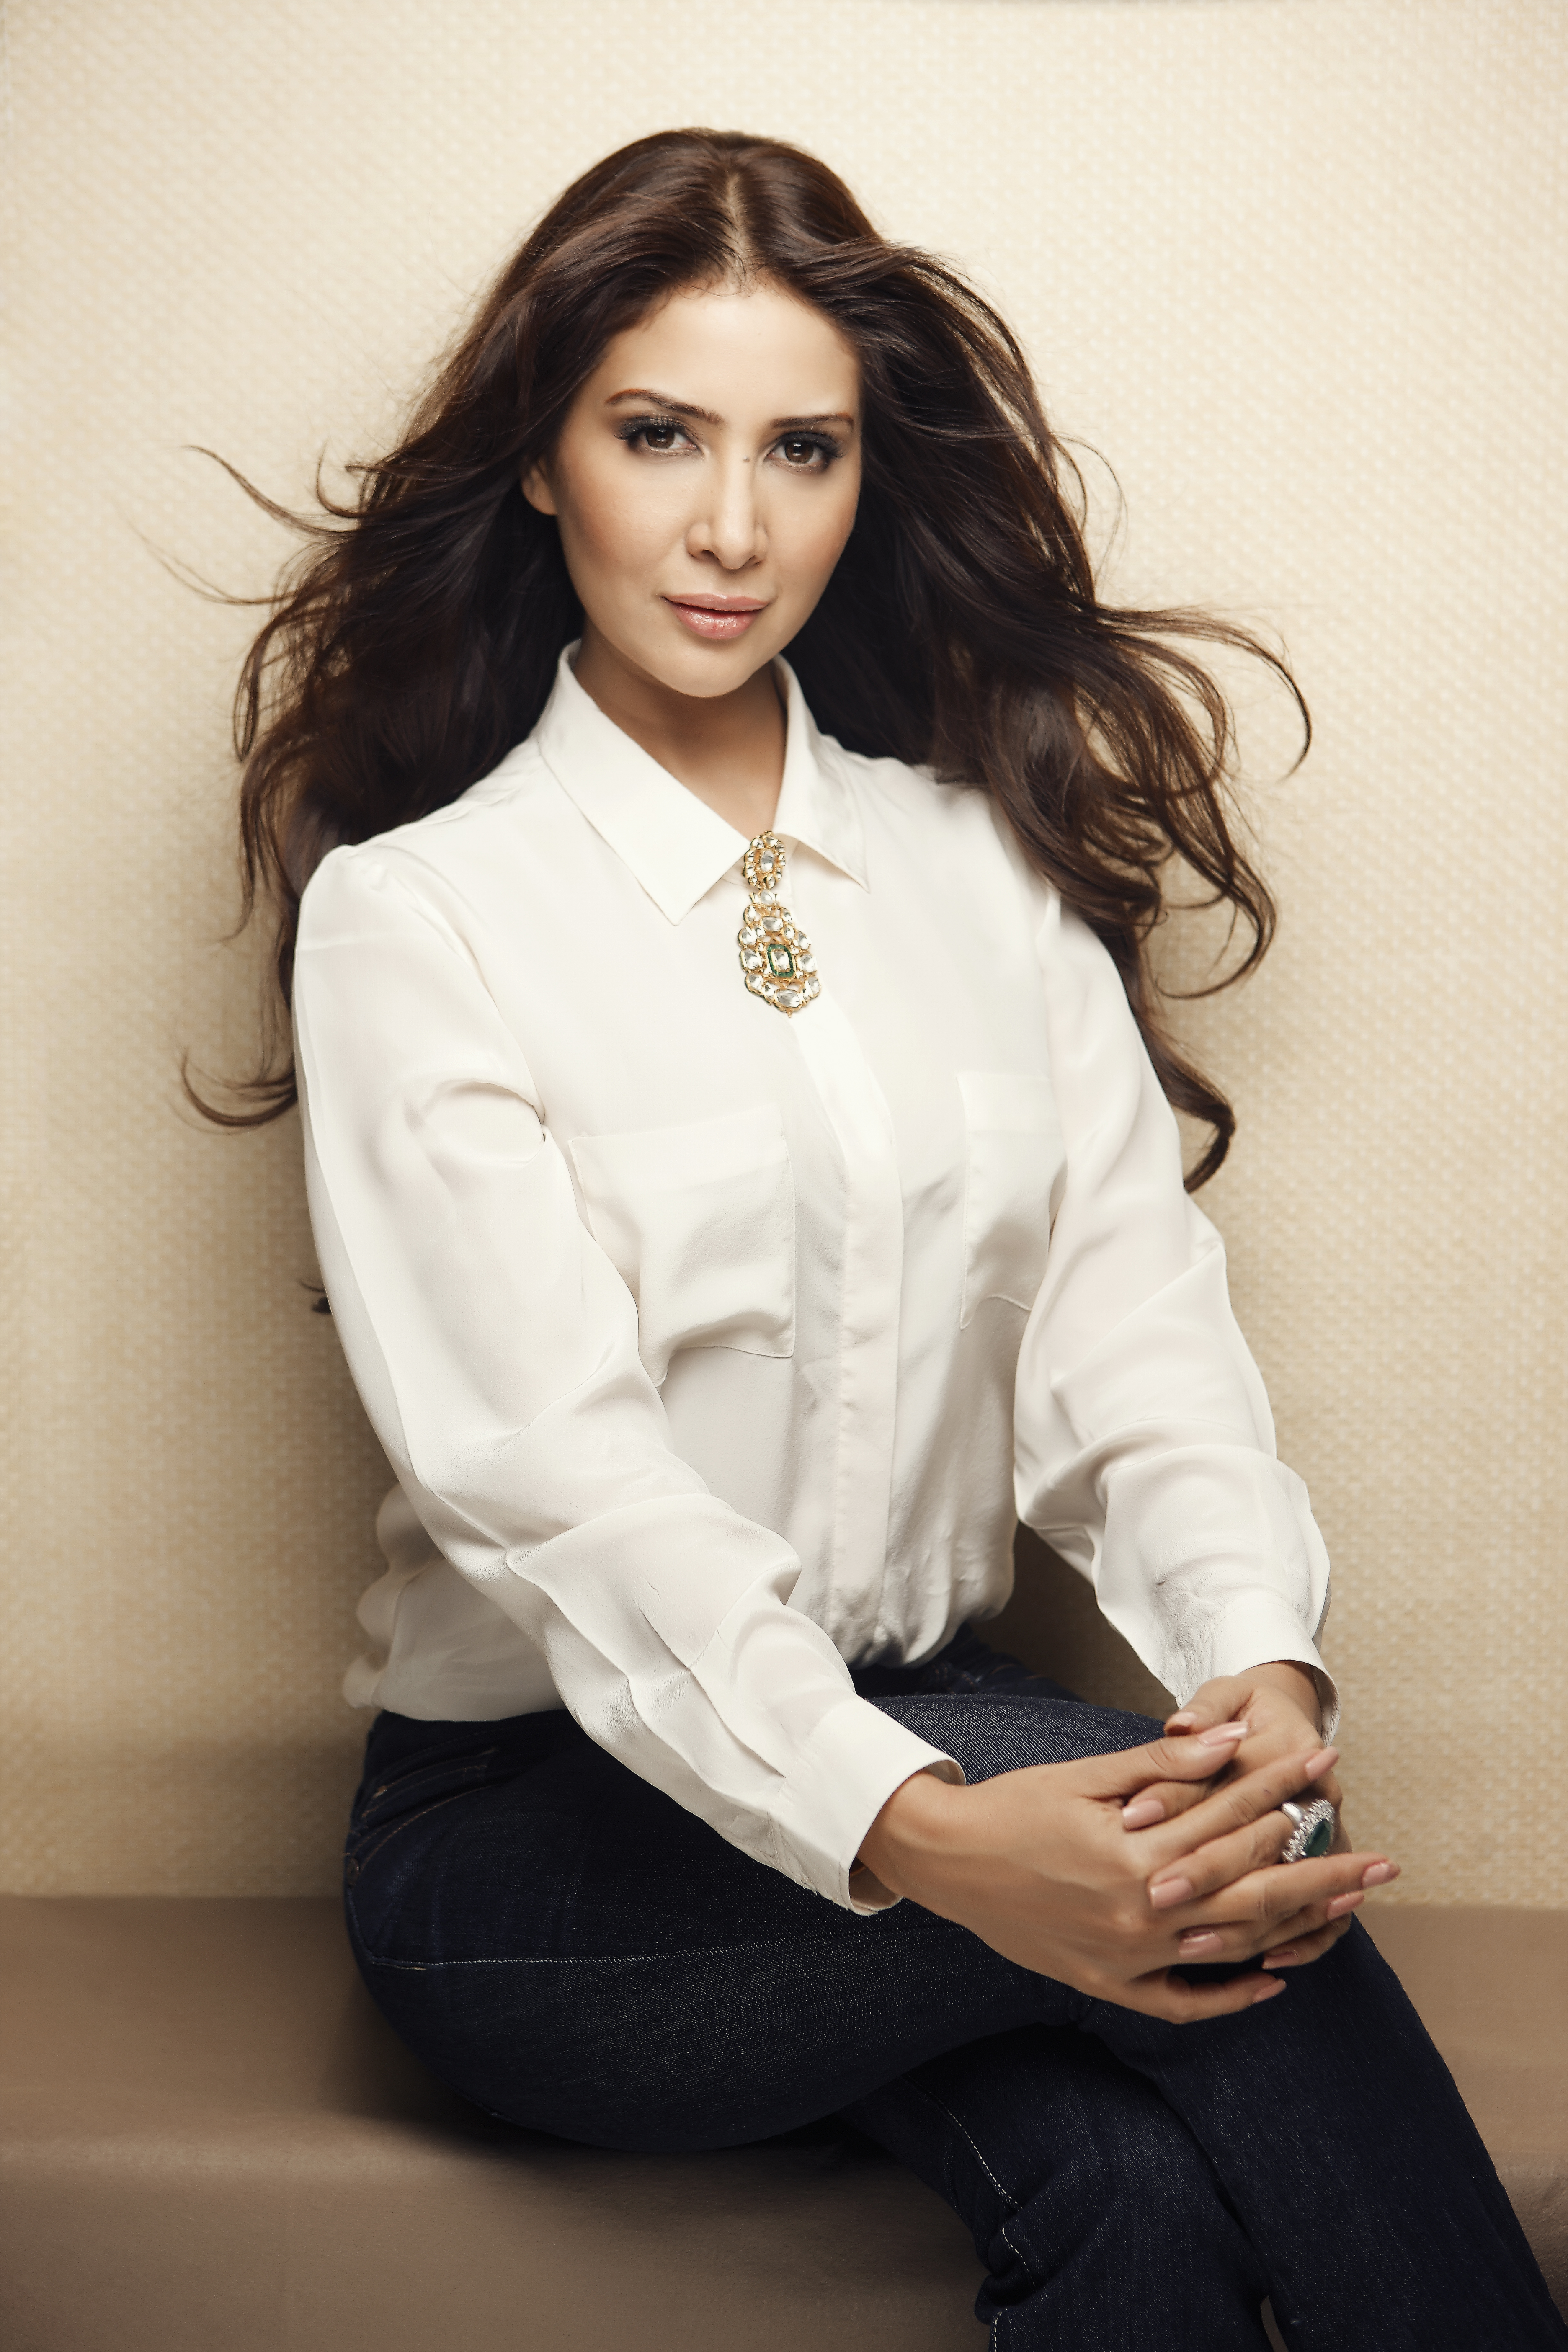 kim sharma facebookkim sharma wikipedia, kim sharma 2016, kim sharma wiki, kim sharma date of birth, kim sharma nancy ajram, kim sharma instagram, kim sharma filmography, kim sharma and ali punjani, kim sharma husband, kim sharma marriage, kim sharma biography, kim sharma facebook, kim sharma mohabbatein, kim sharma ips, kim sharma wedding photos, kim sharma hot scene, kim sharma bikini